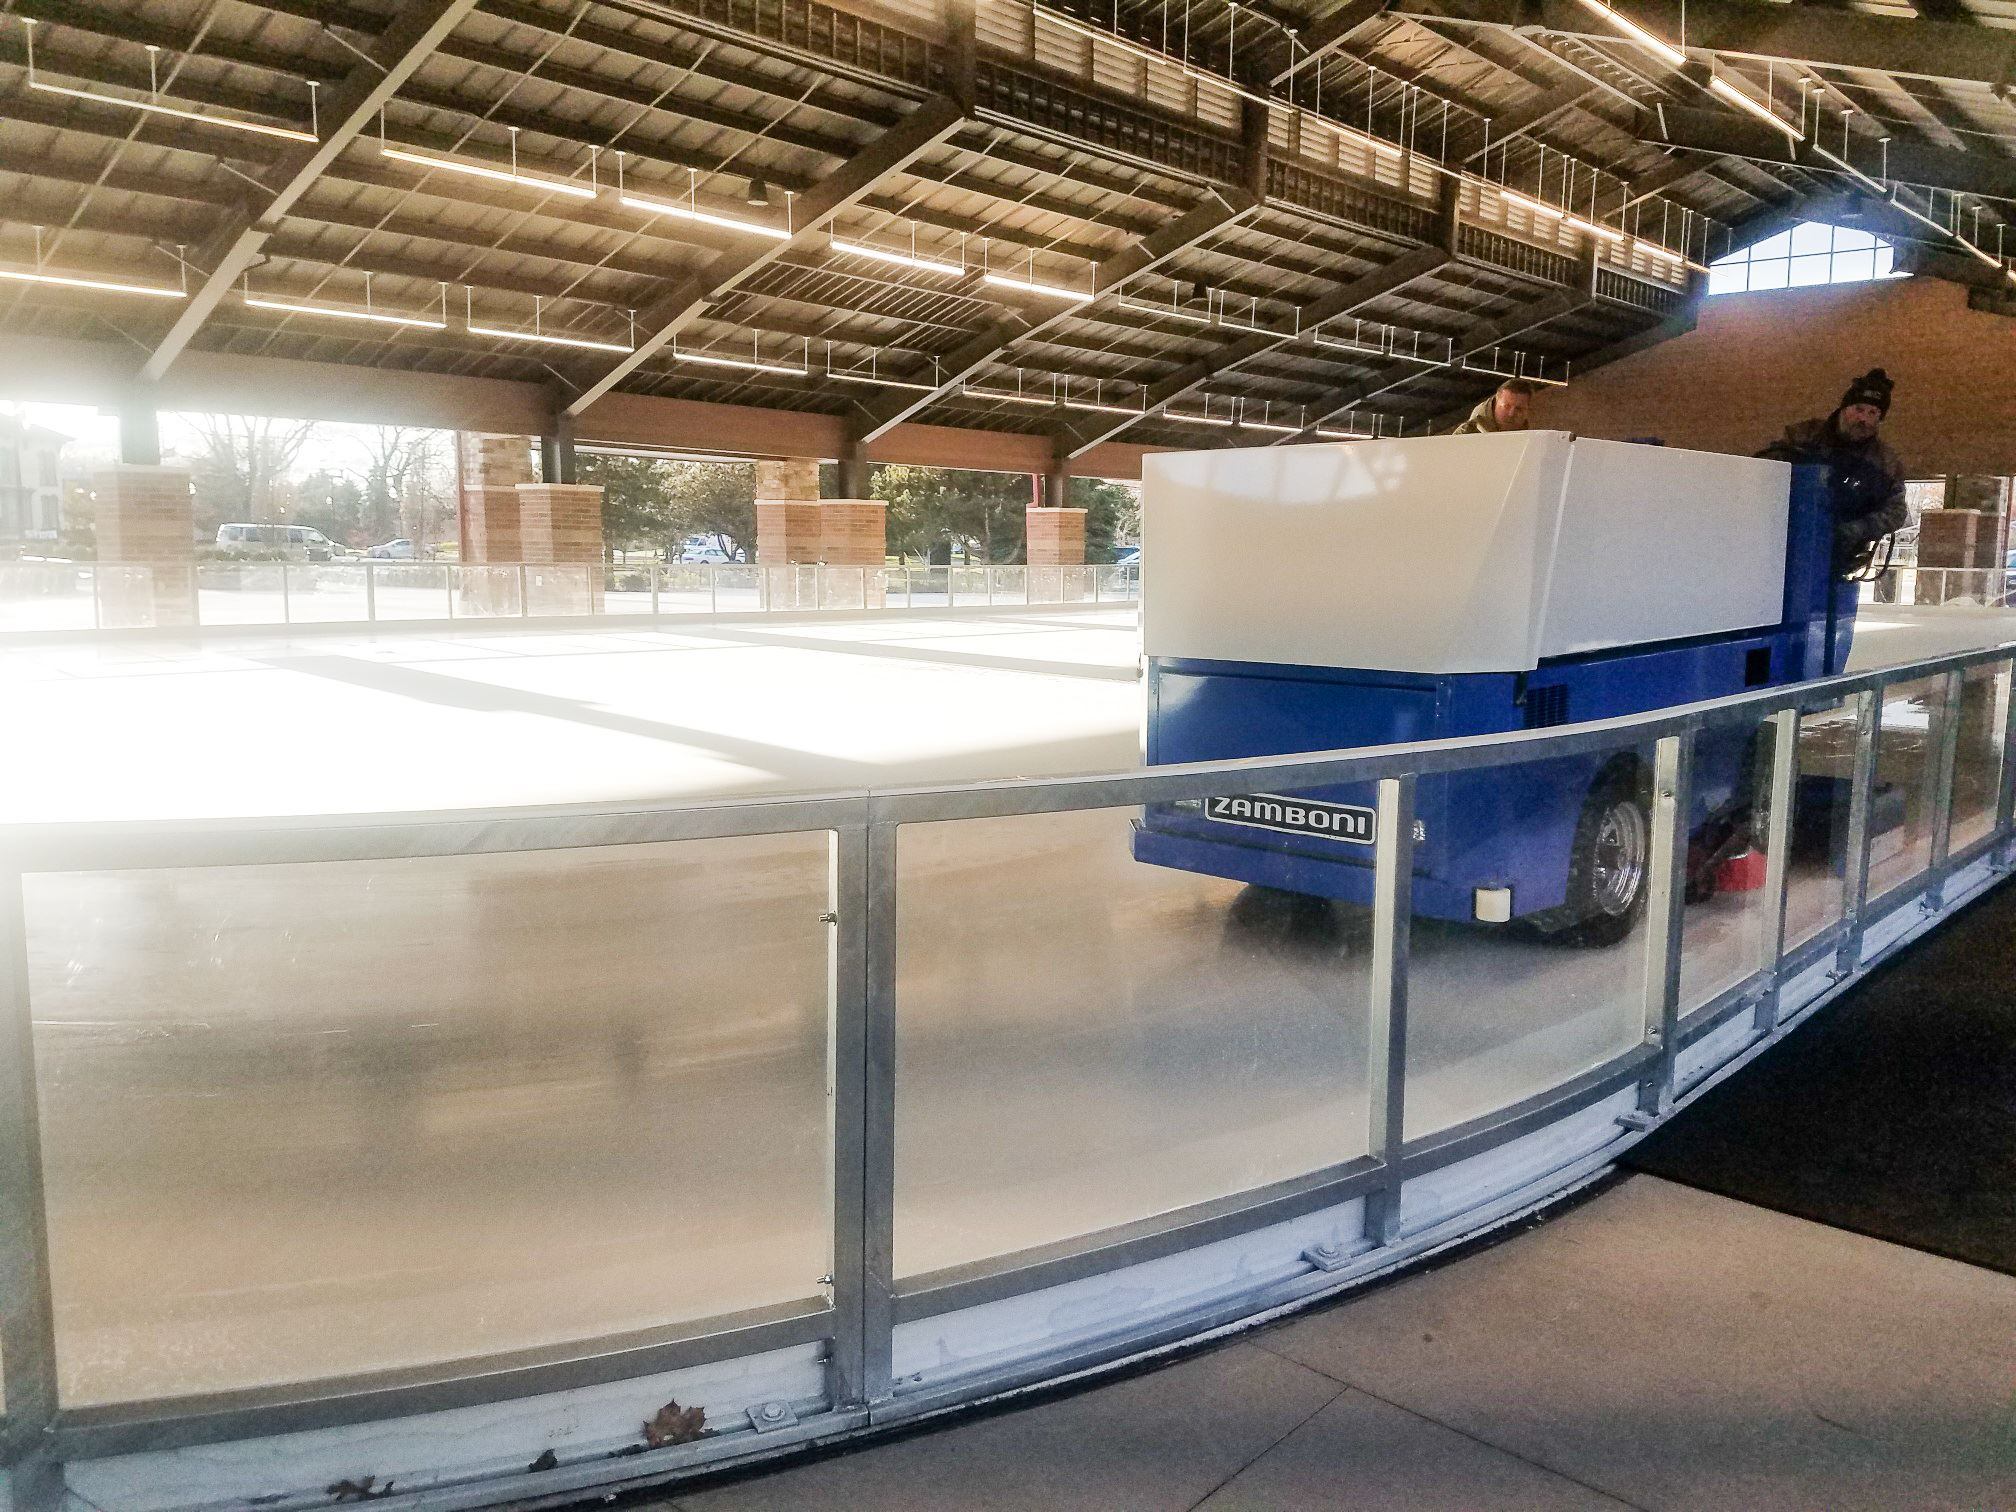 Ice Rink with Zamboni